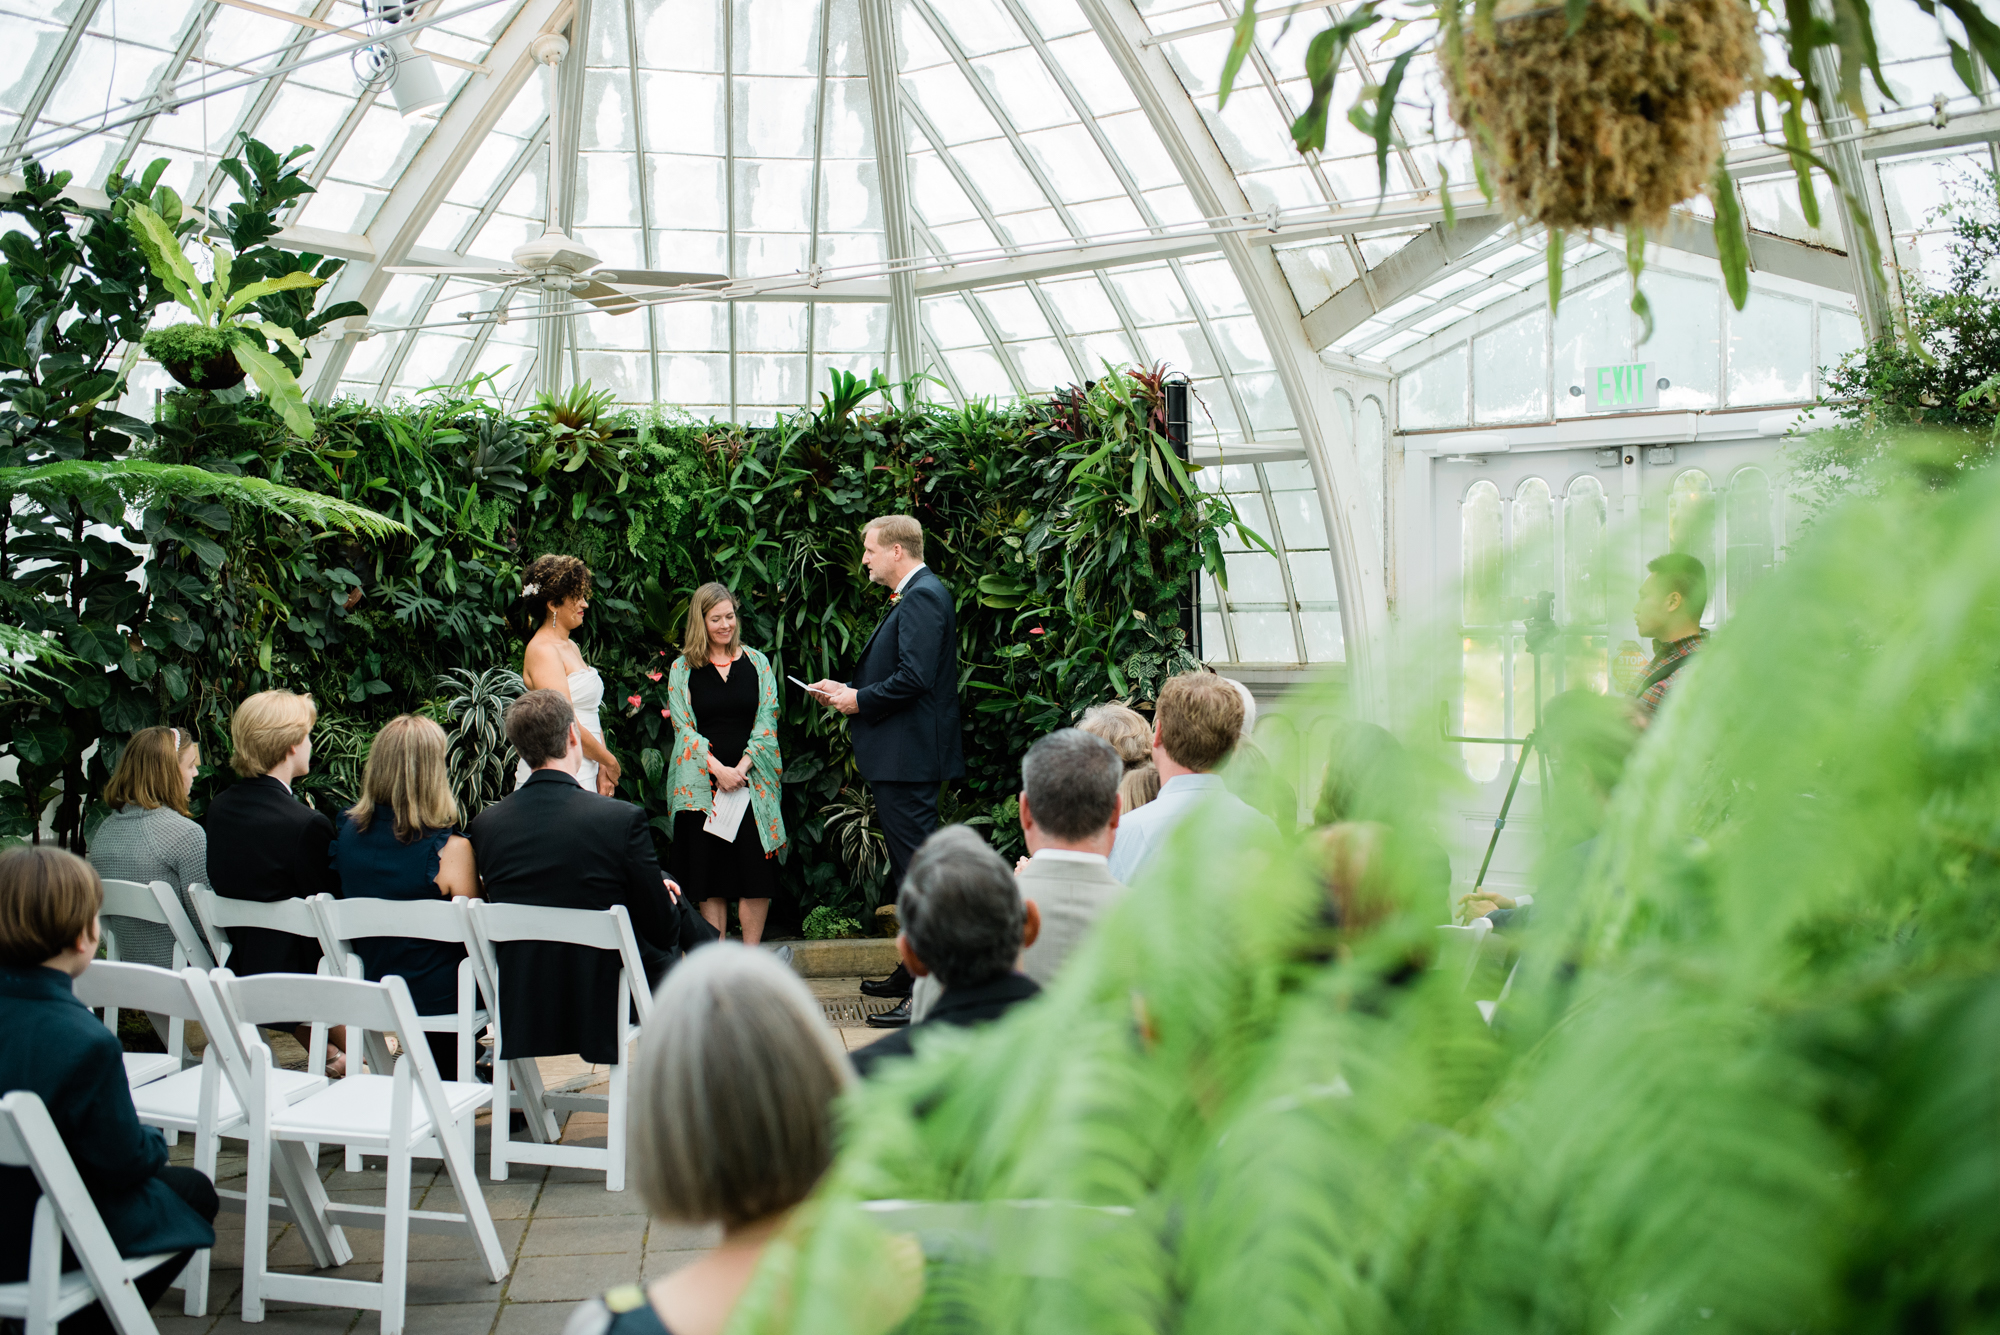 Conservatory_of_Flowers_San_Francisco_Wedding_028.jpg